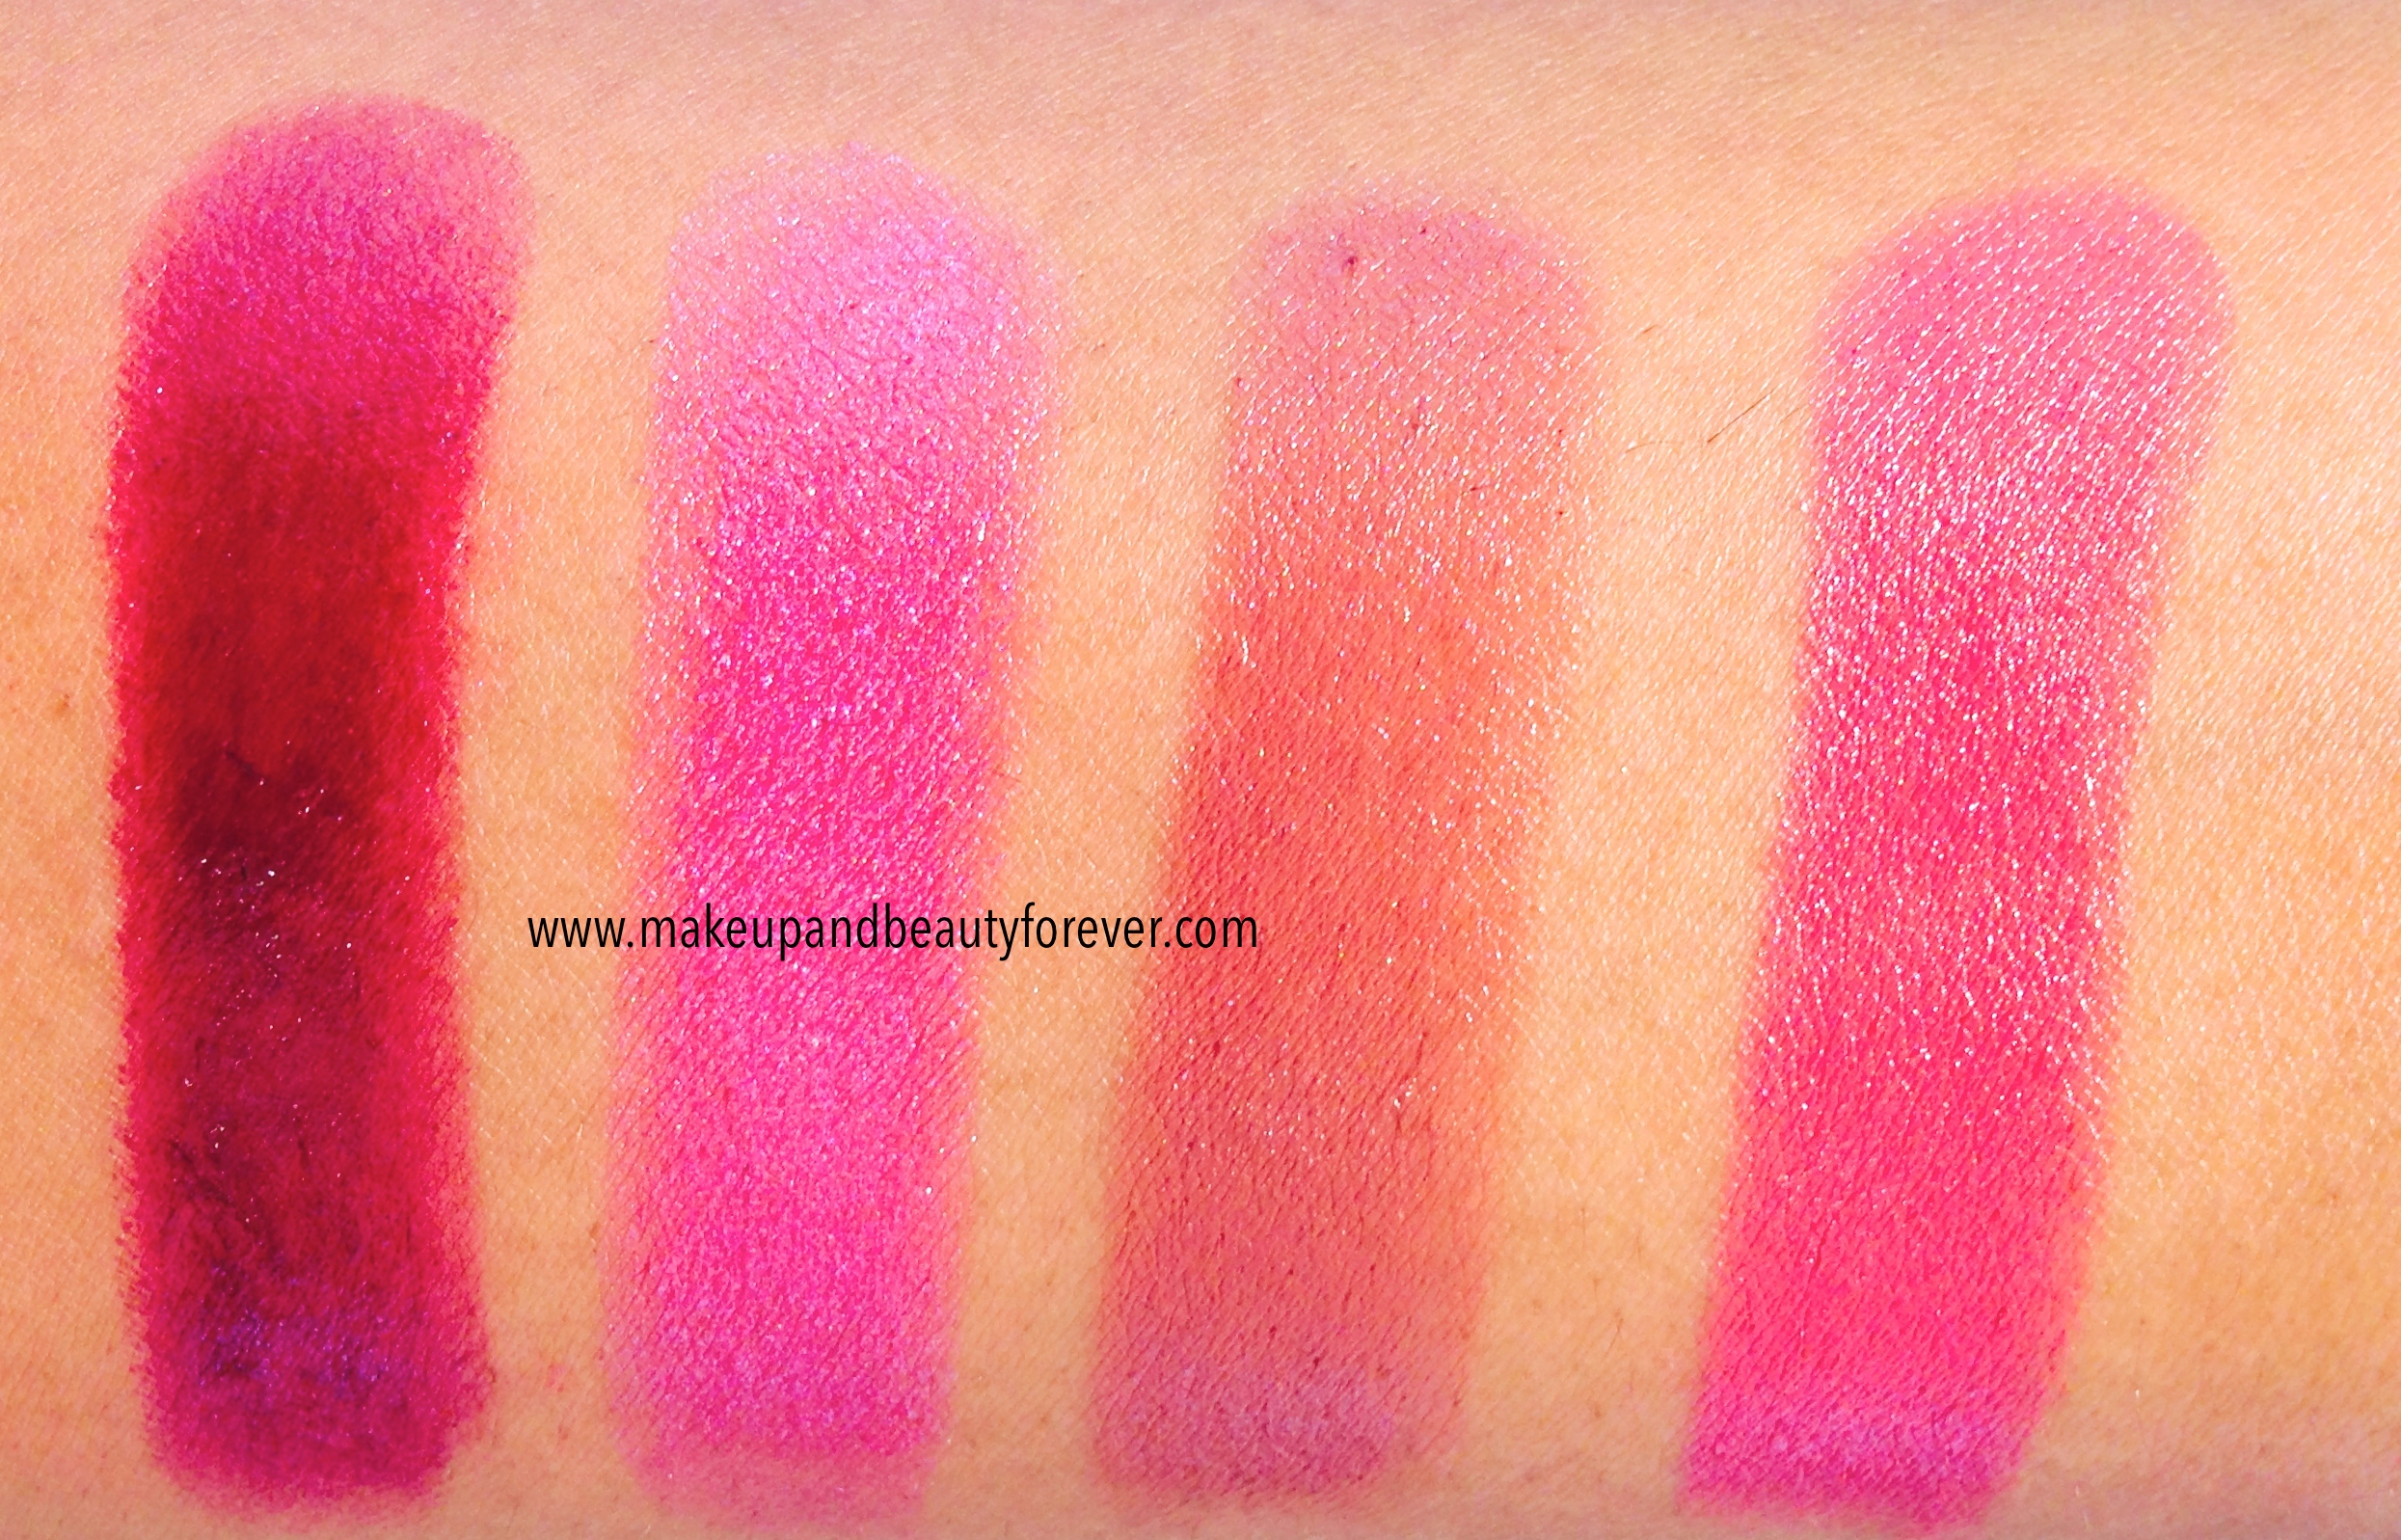 Maybelline Lipstick India Refined Wine 82 Rose Quartz 1432 Crazy For Coffee 275 Hooked On